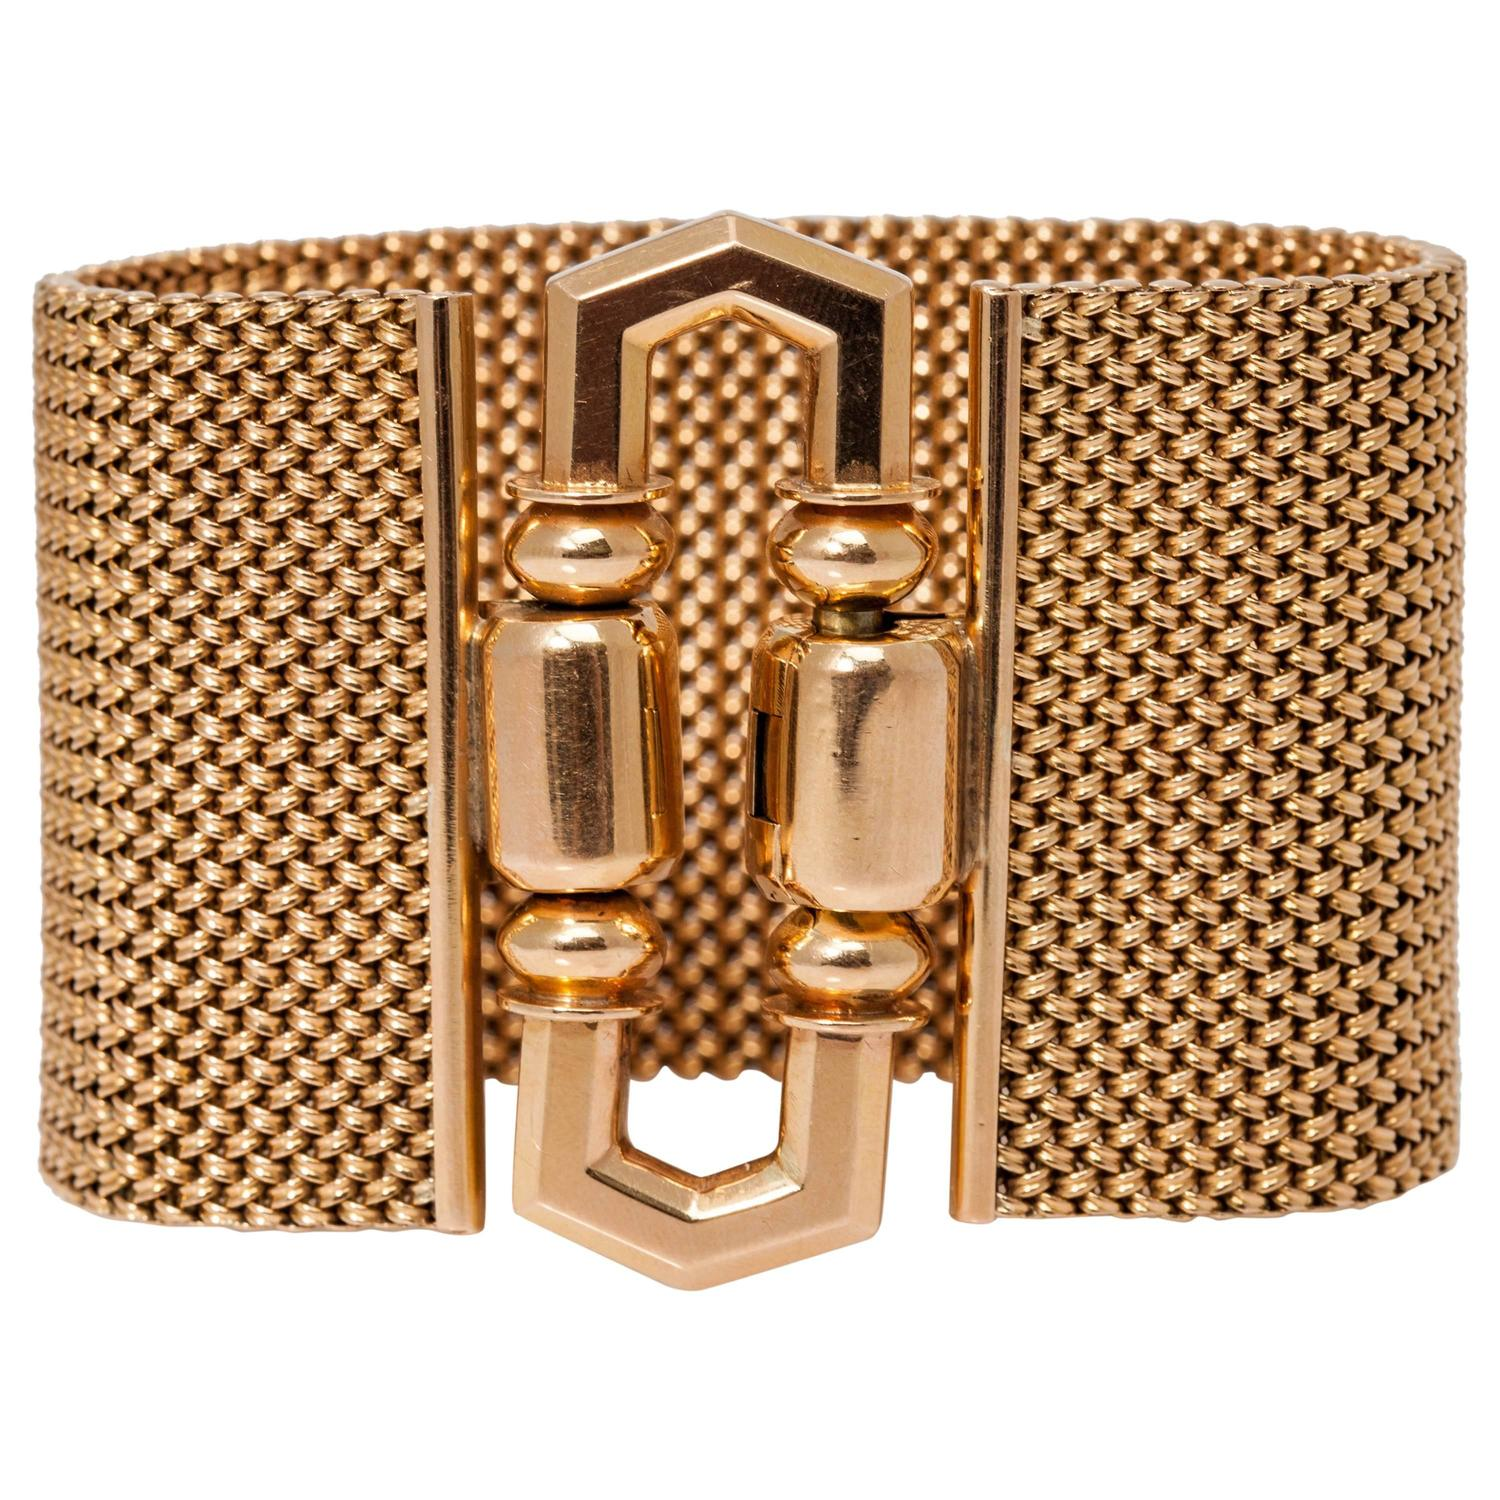 watch cm follie rose colorxx square xx folli hires en retro bracelet gold